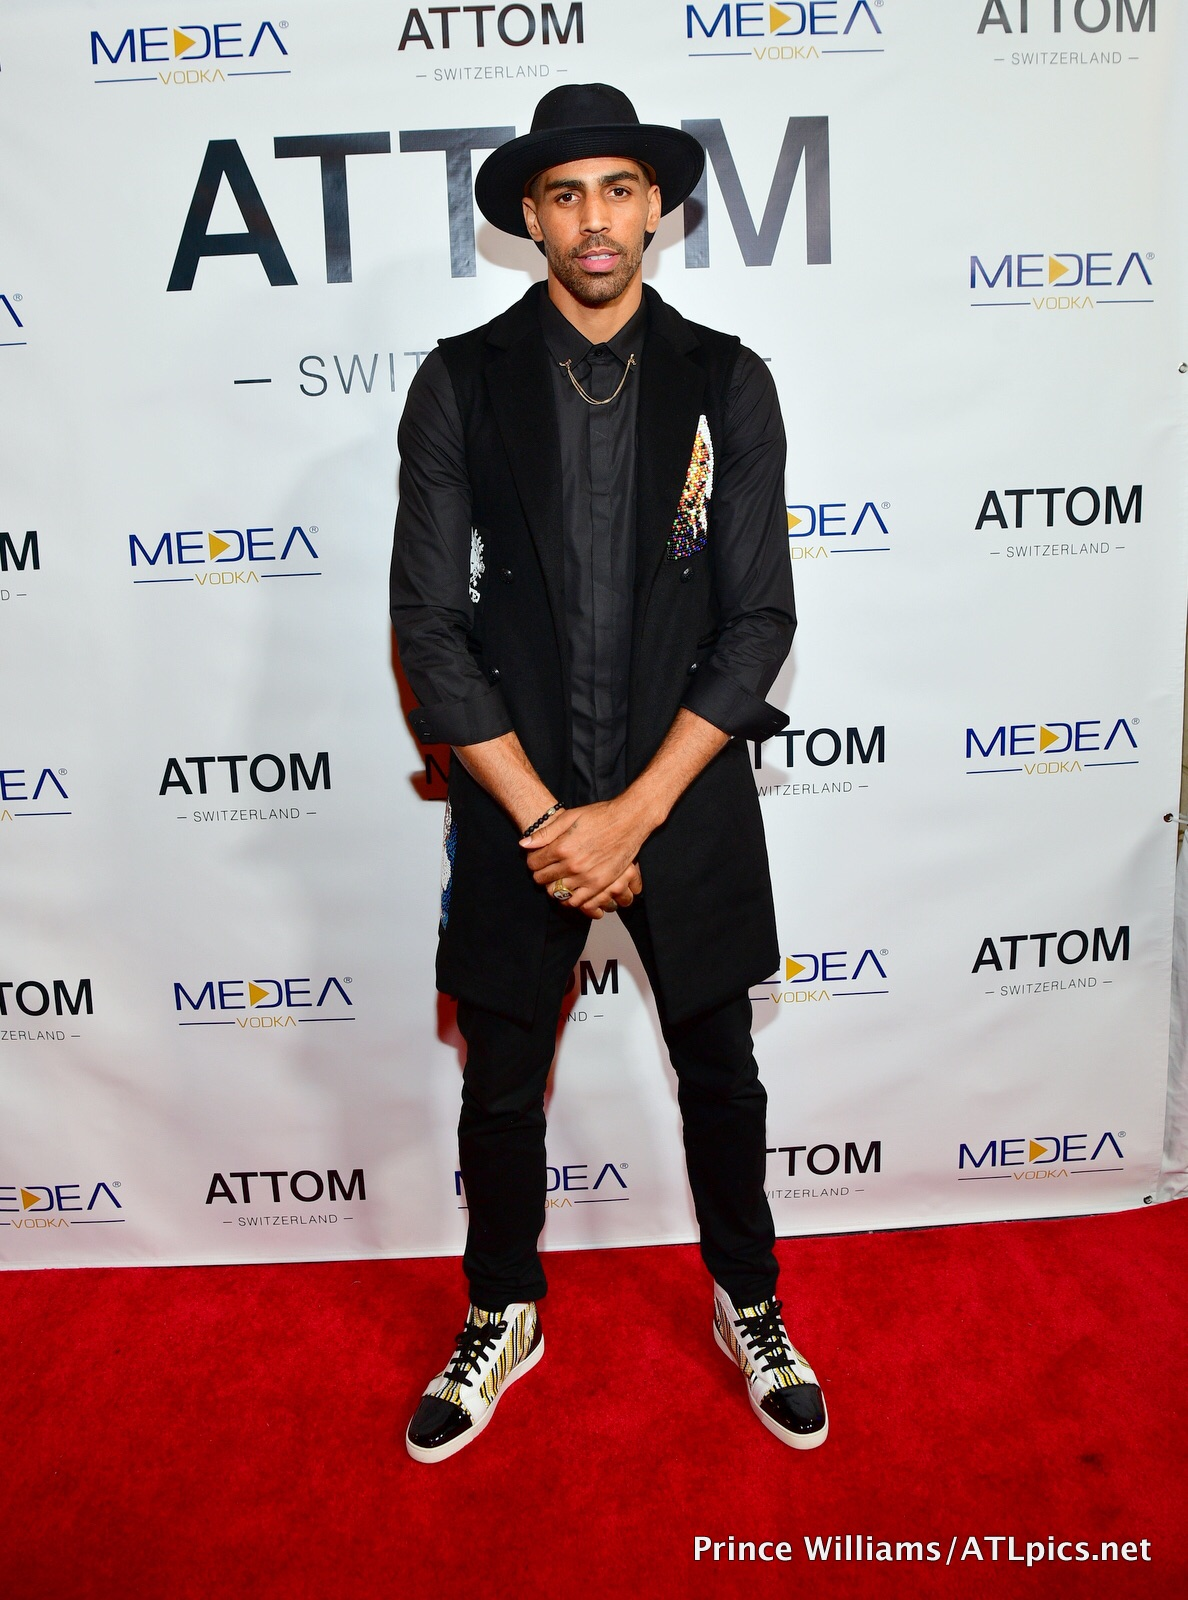 STYLE: NBA Thabo Sefolosha Talks ATTOM ATL Luxury Men's